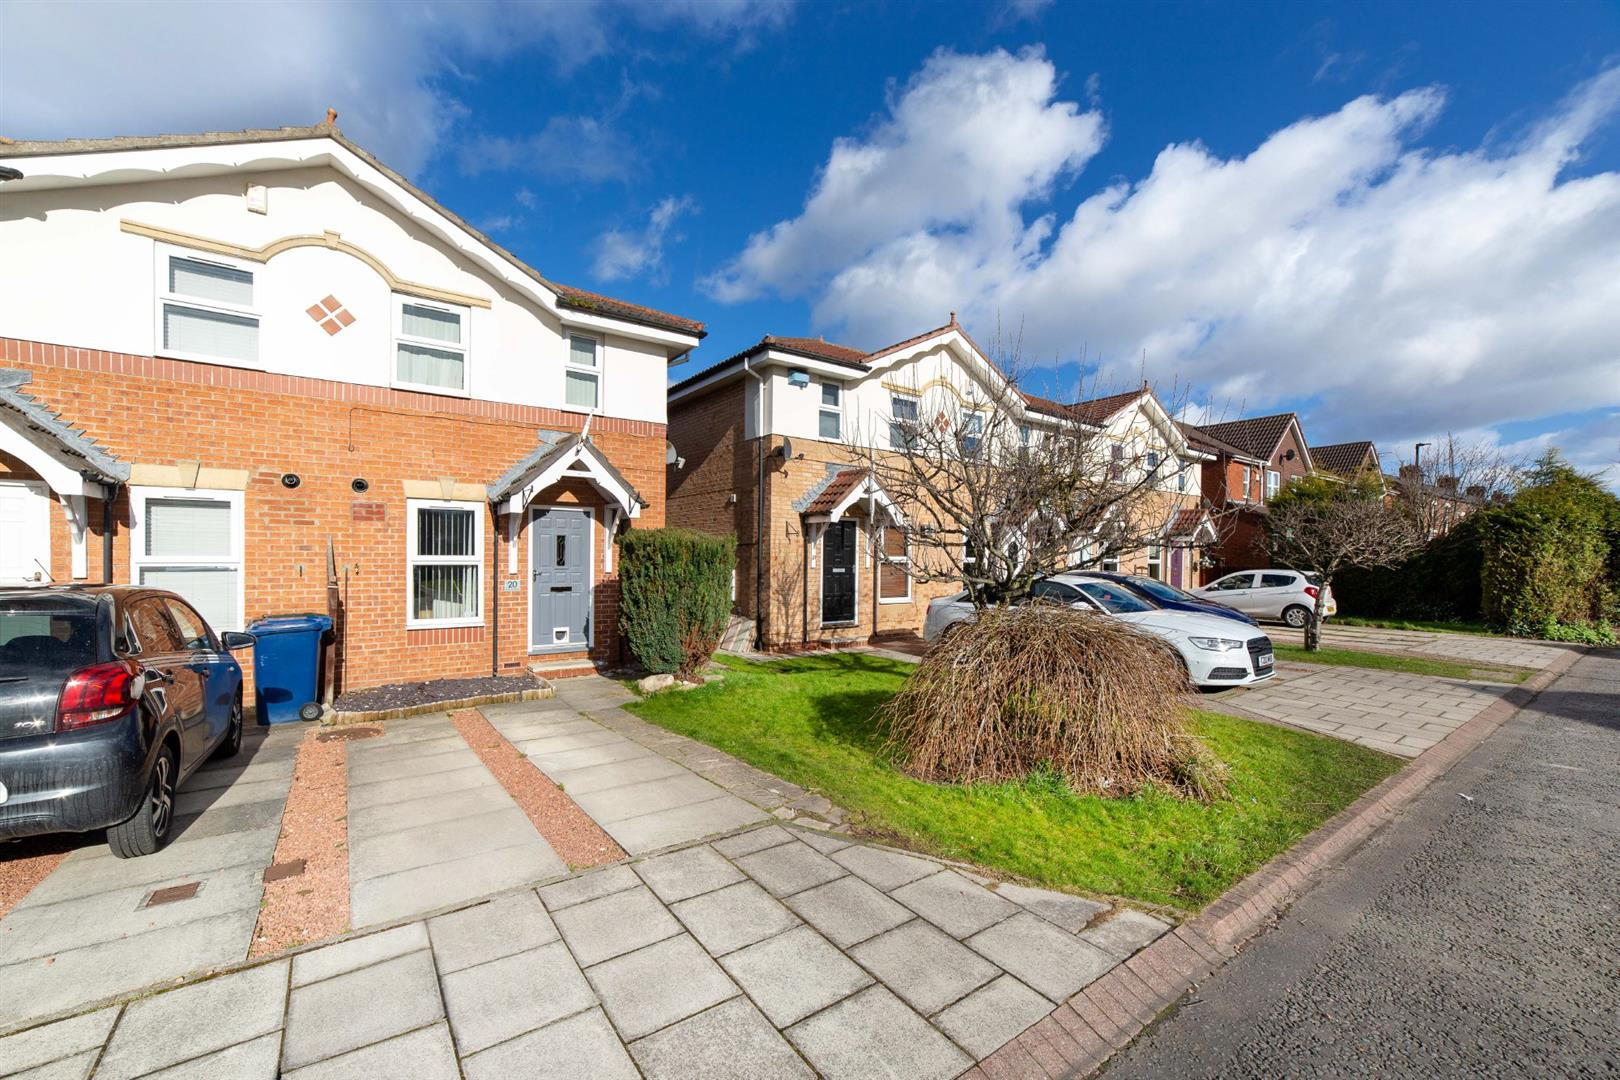 2 bed end of terrace house for sale in Newcastle Upon Tyne, NE13 7BD  - Property Image 1